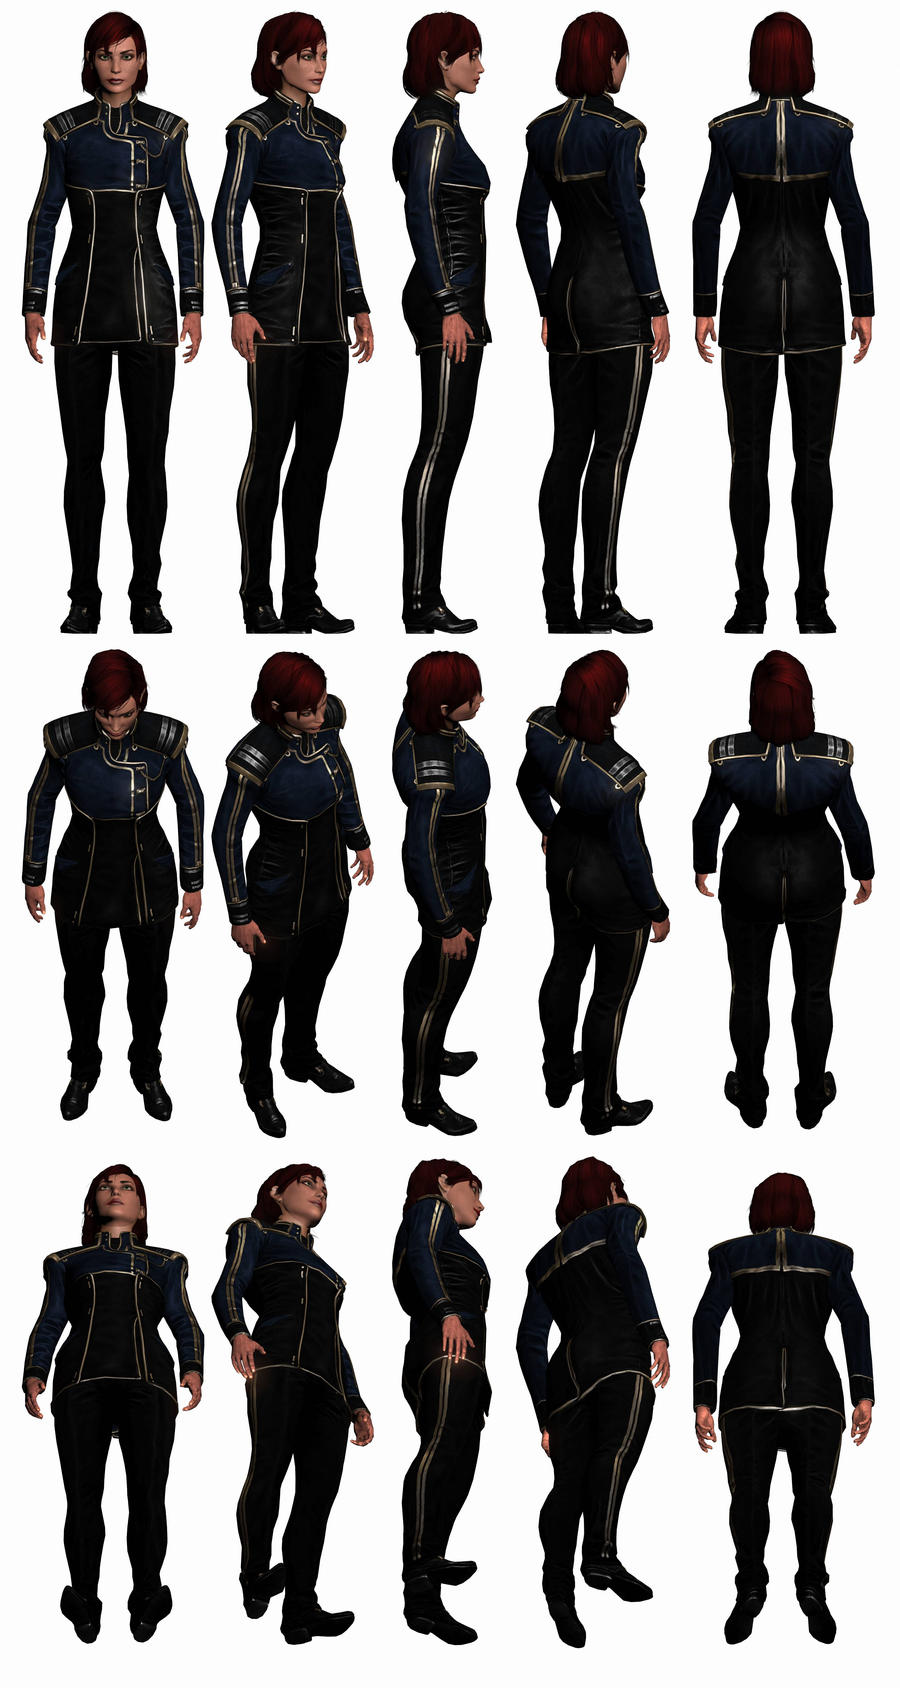 Mass Effect 3, Female Shepard Alliance Uniform. by Troodon80